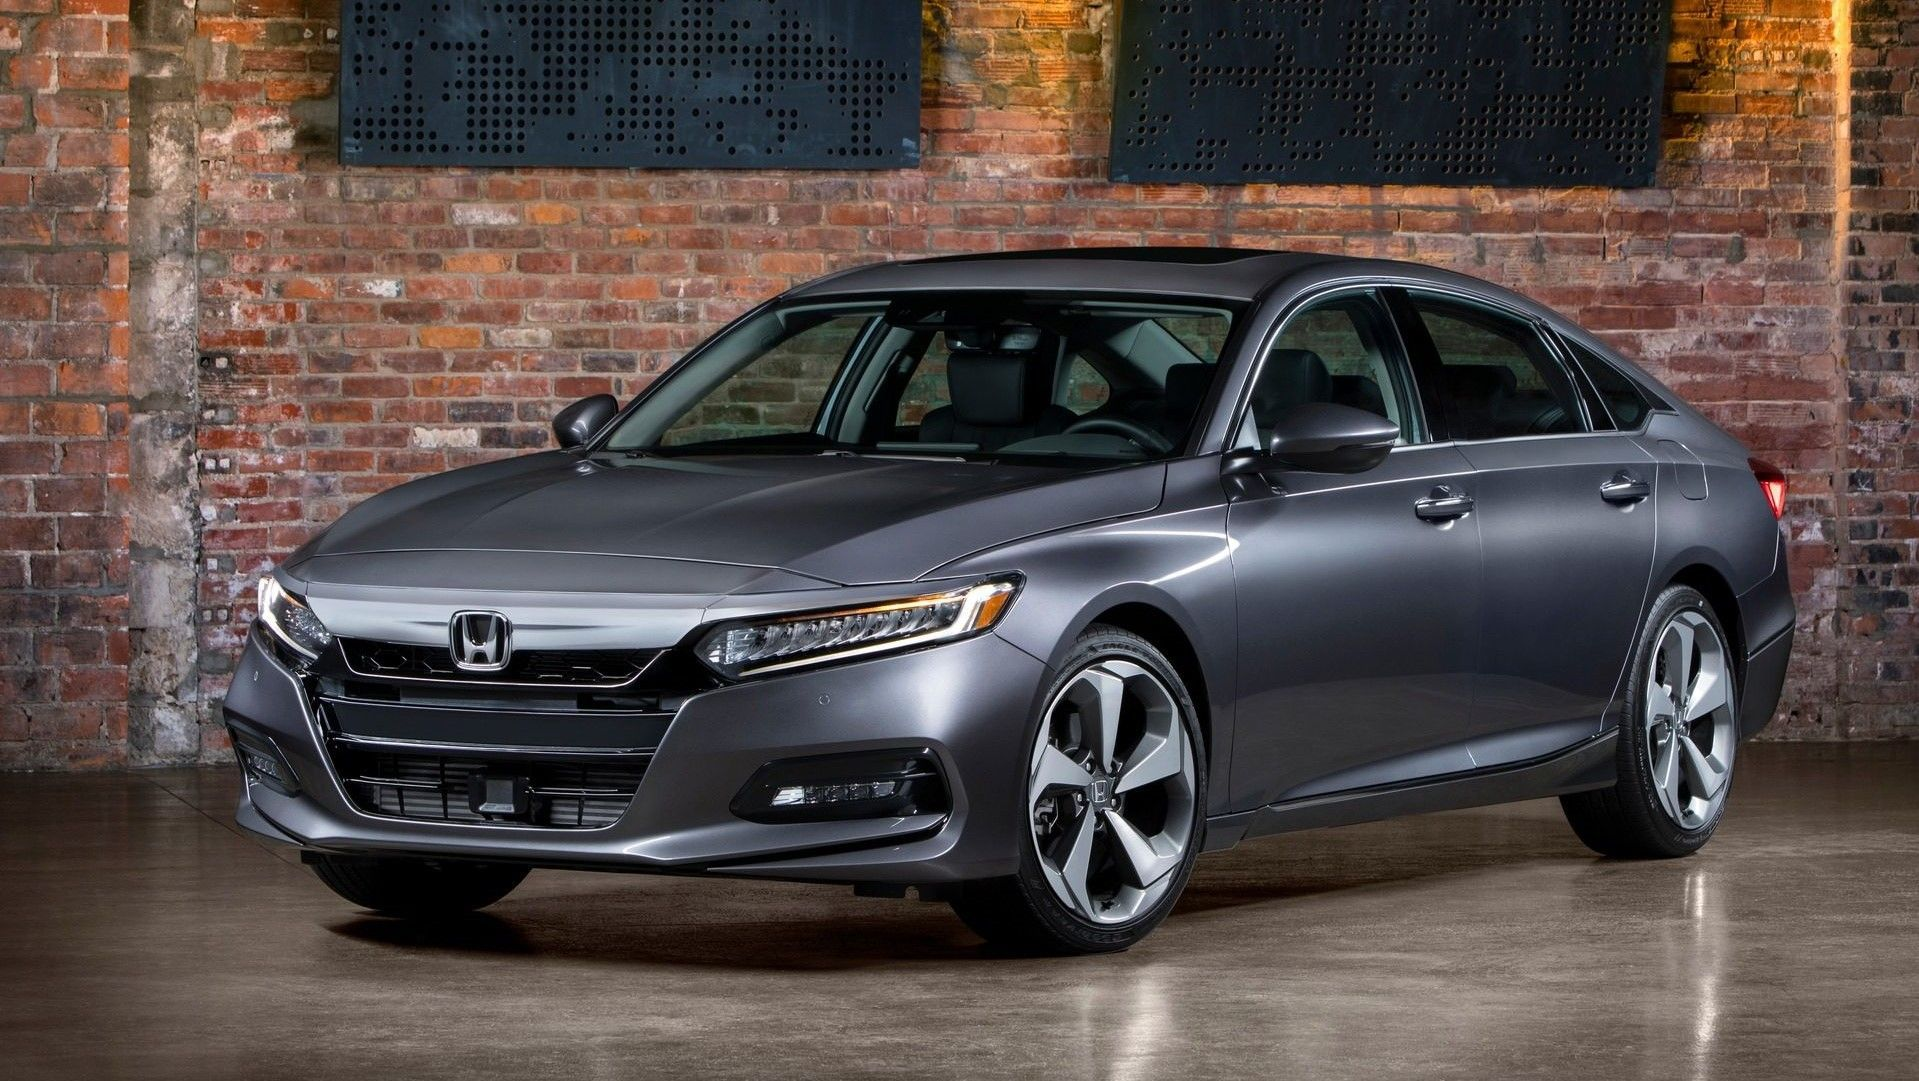 2021 Honda Accord Review Prices Release Date And Changes Explained Honda Accord Sport Accord Sport Honda Accord